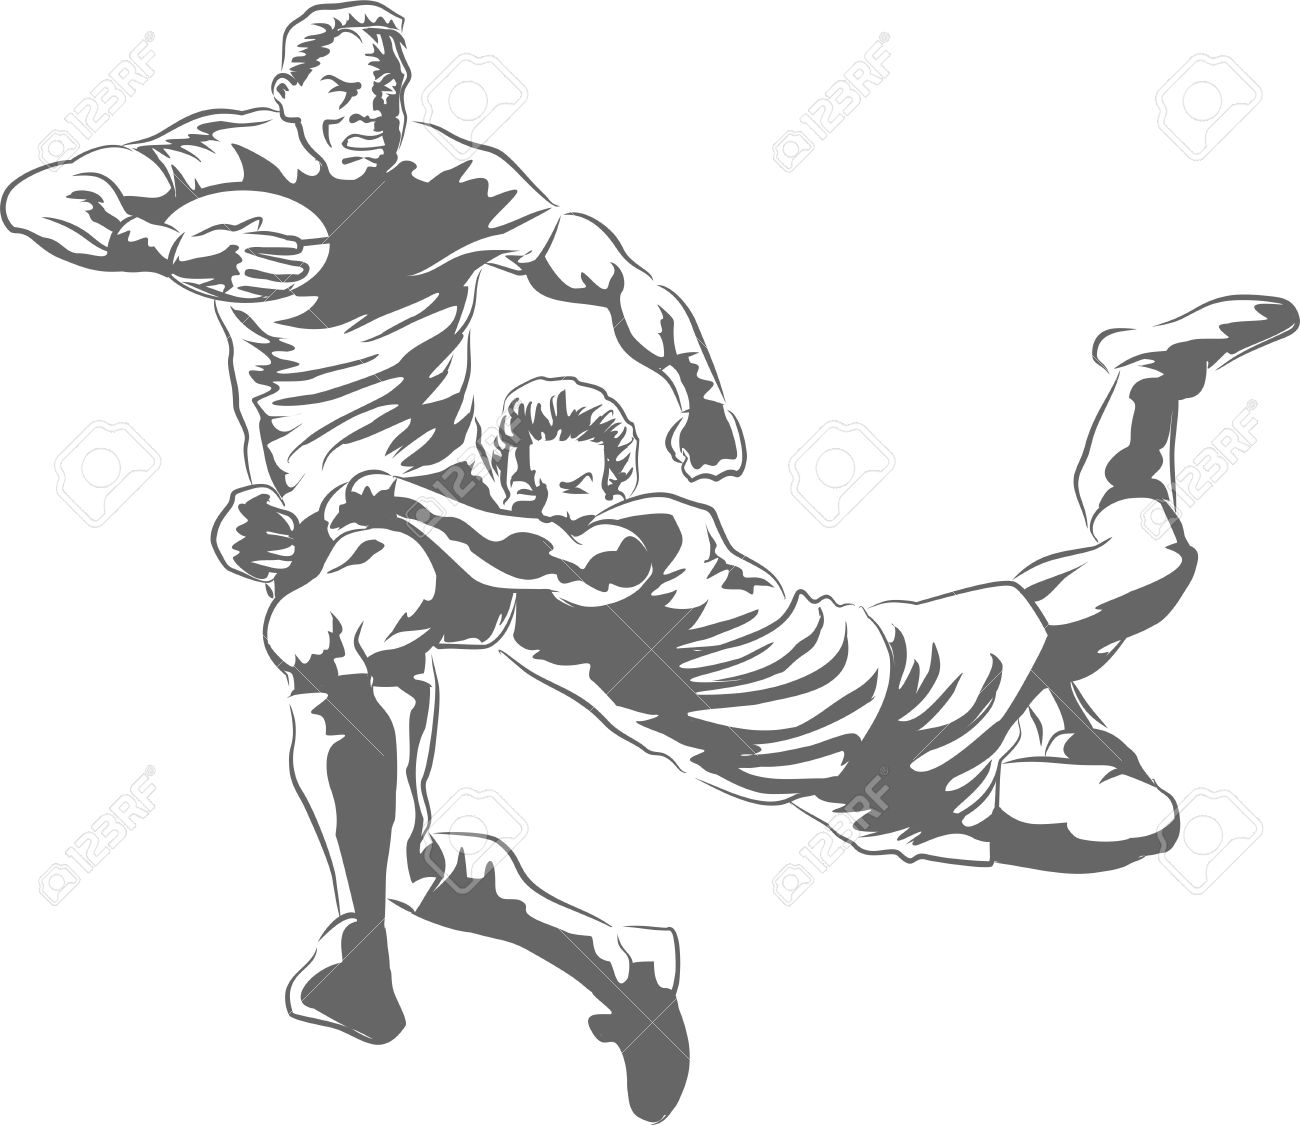 English Rugby Action, a hand reaches out in desperation as forward sprints for the line Stock Vector - 18875694